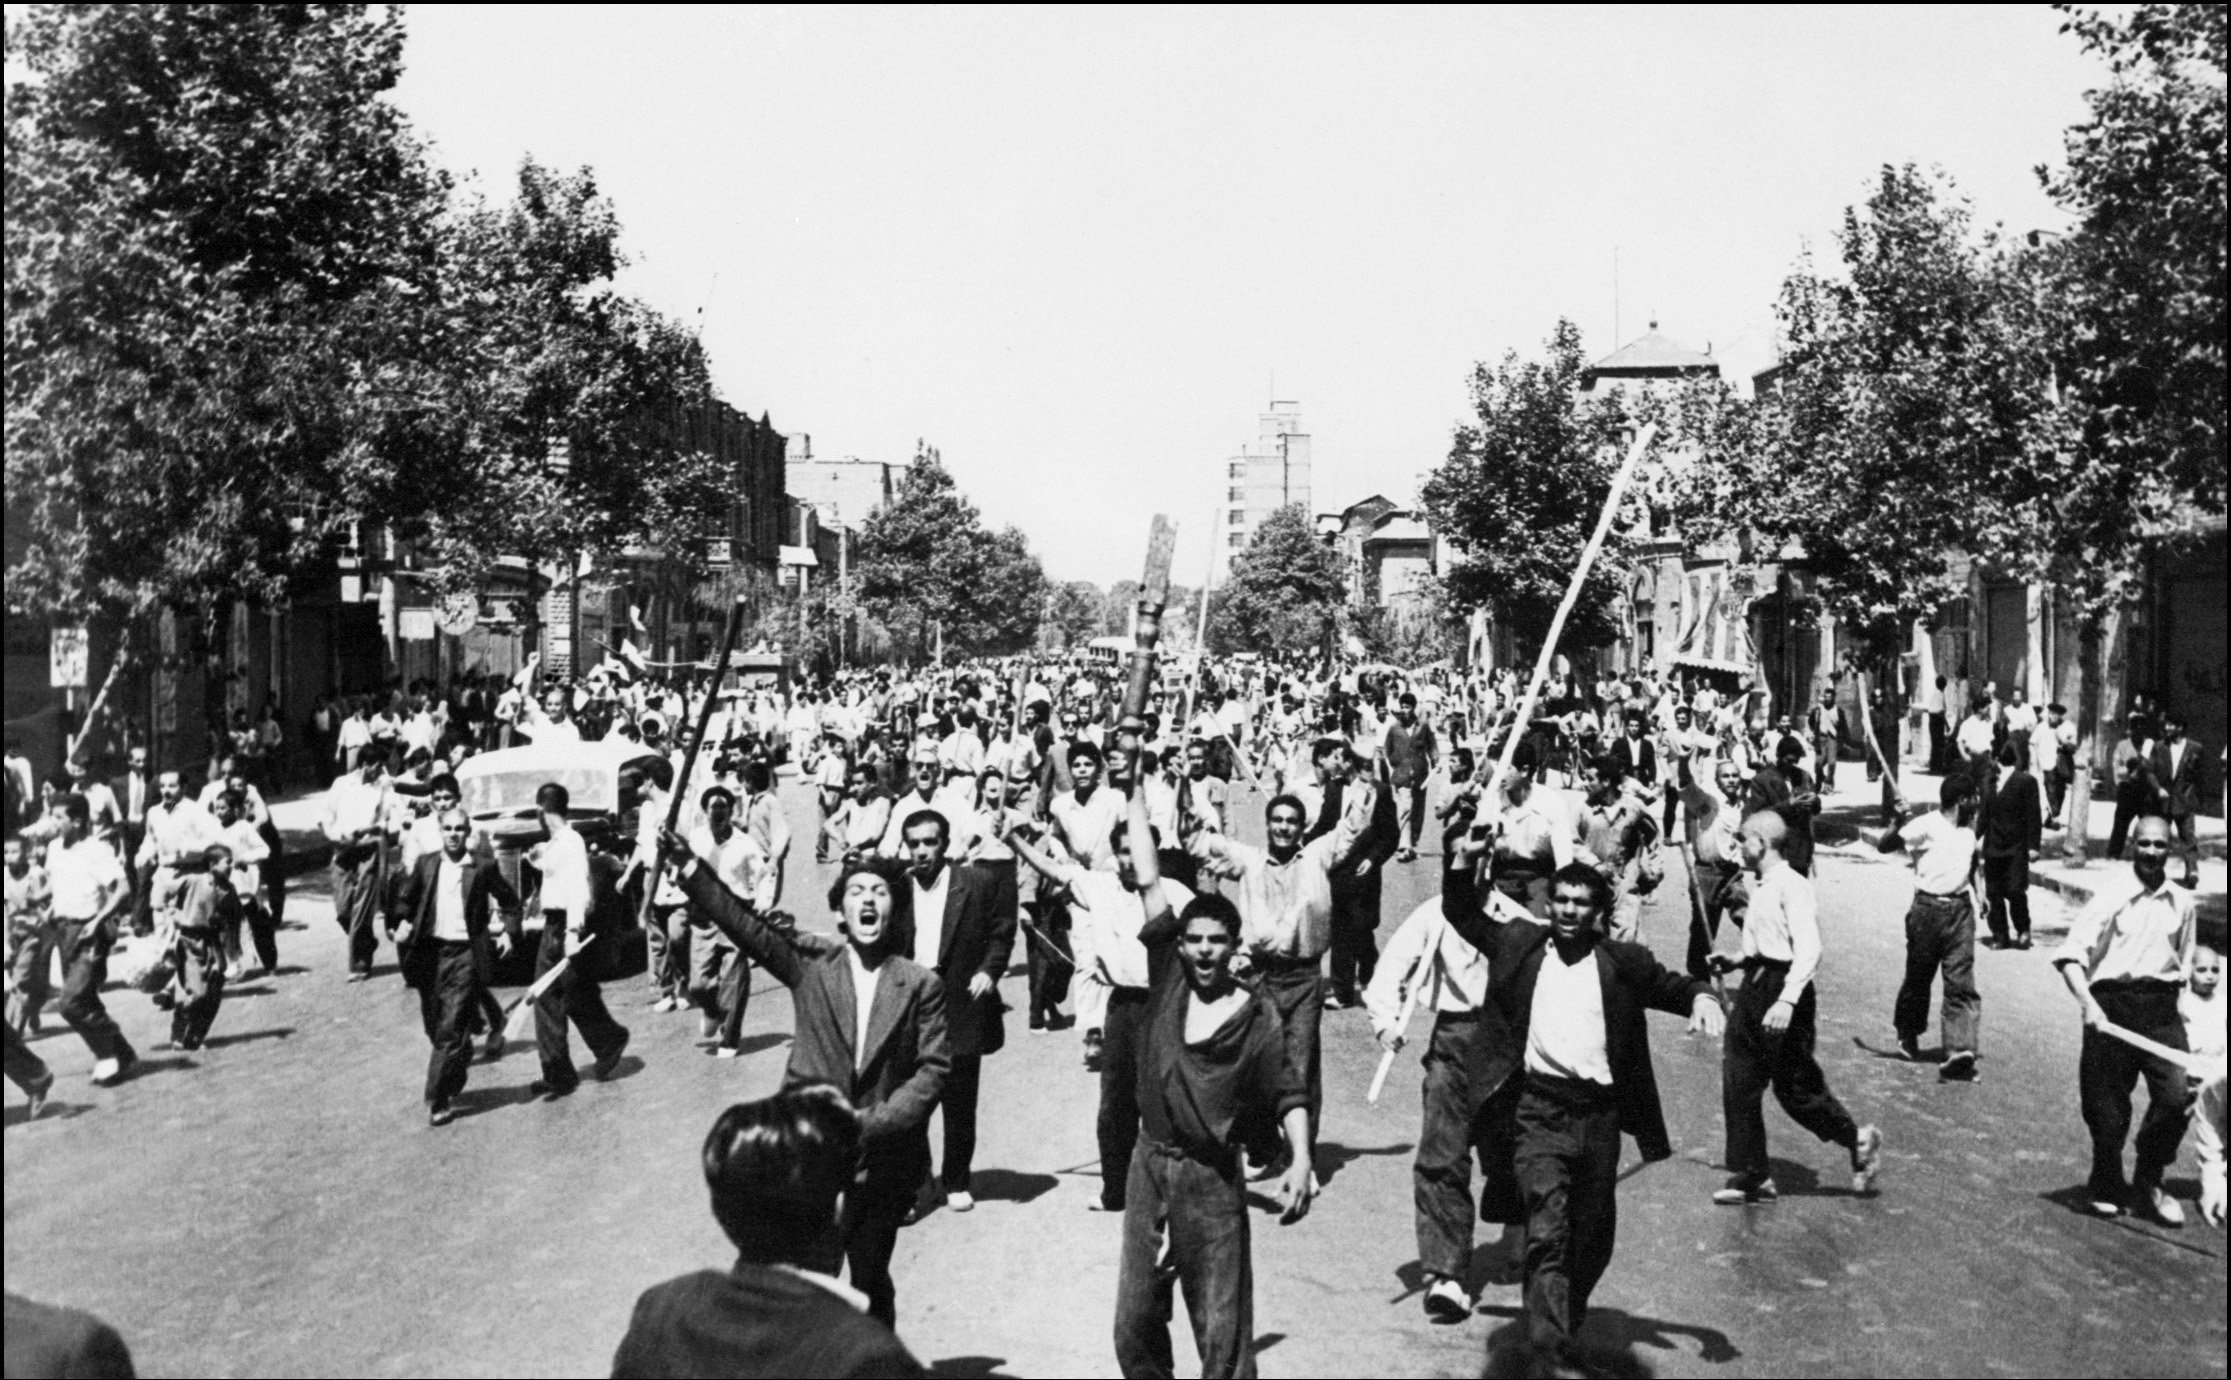 Rioters armed with staves shout slogans, during riots in Tehran, August 1953